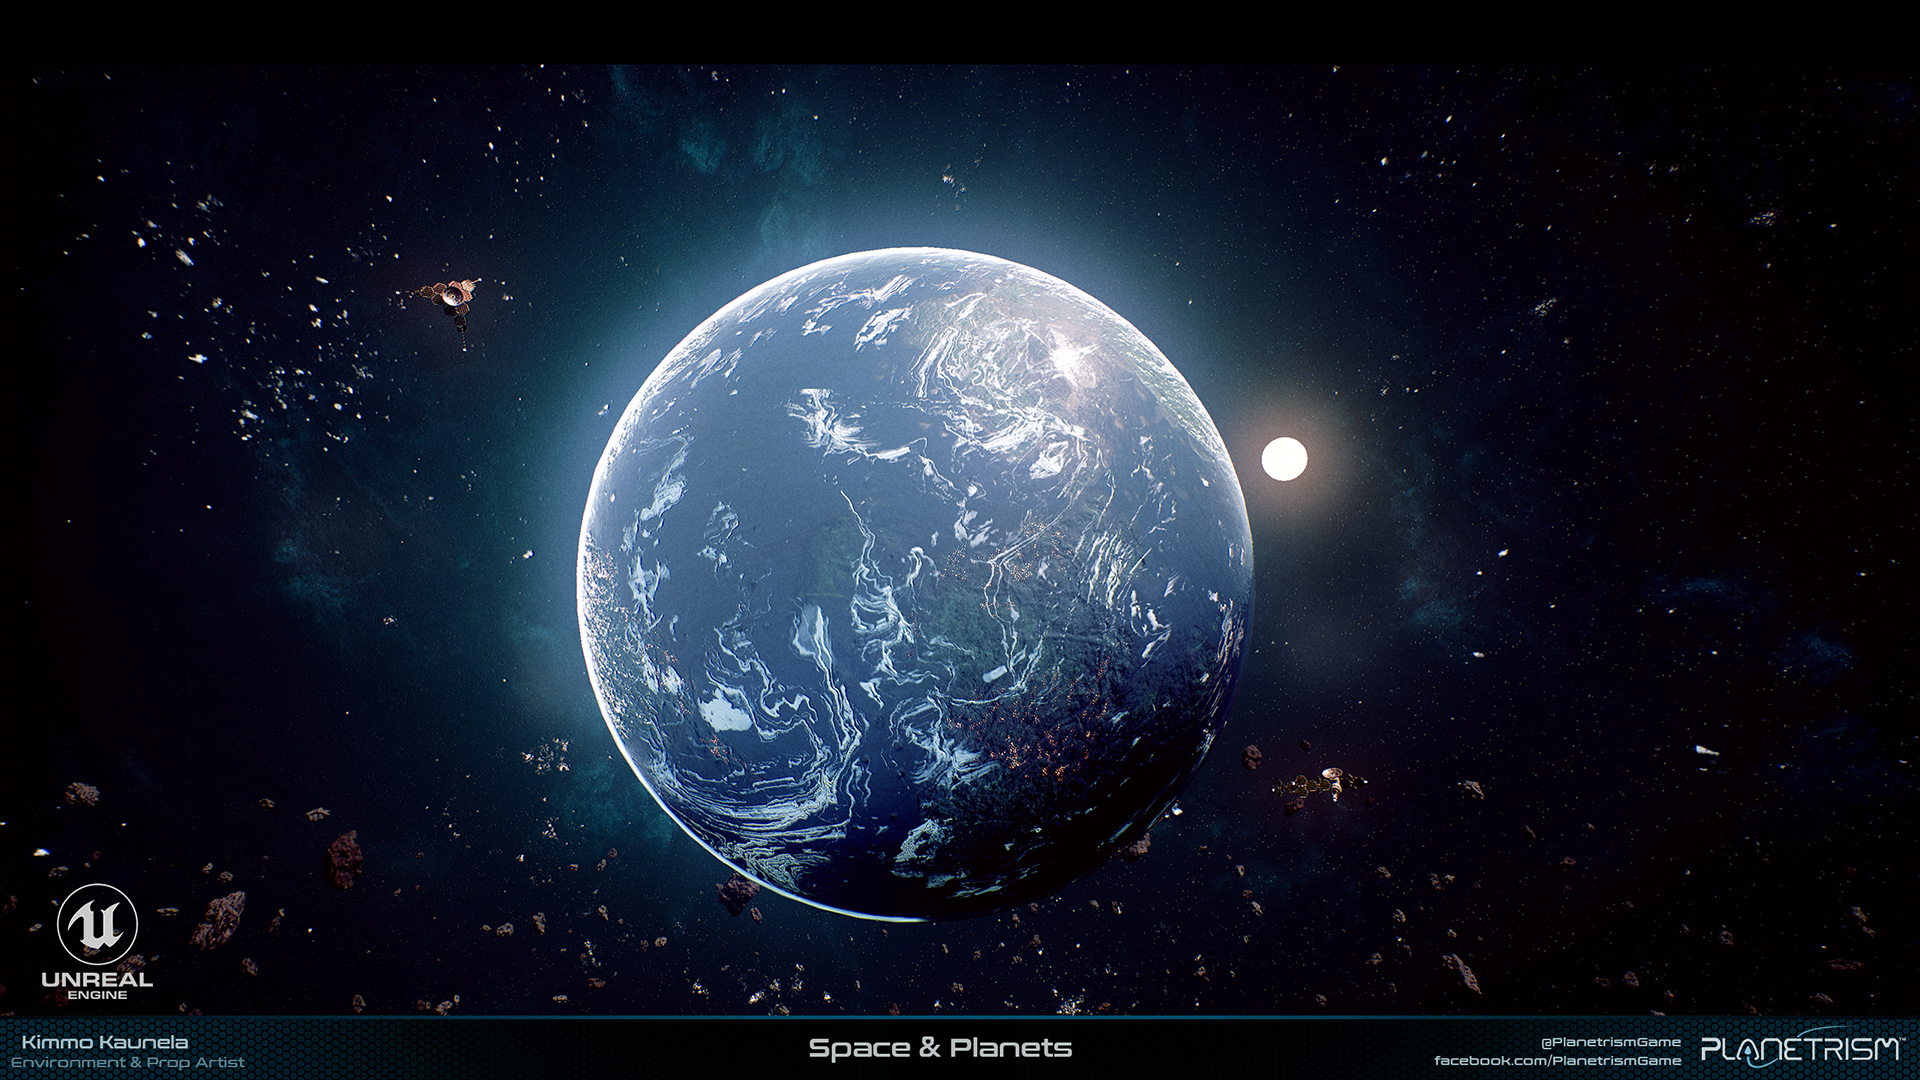 Planetrism - Space and Planets